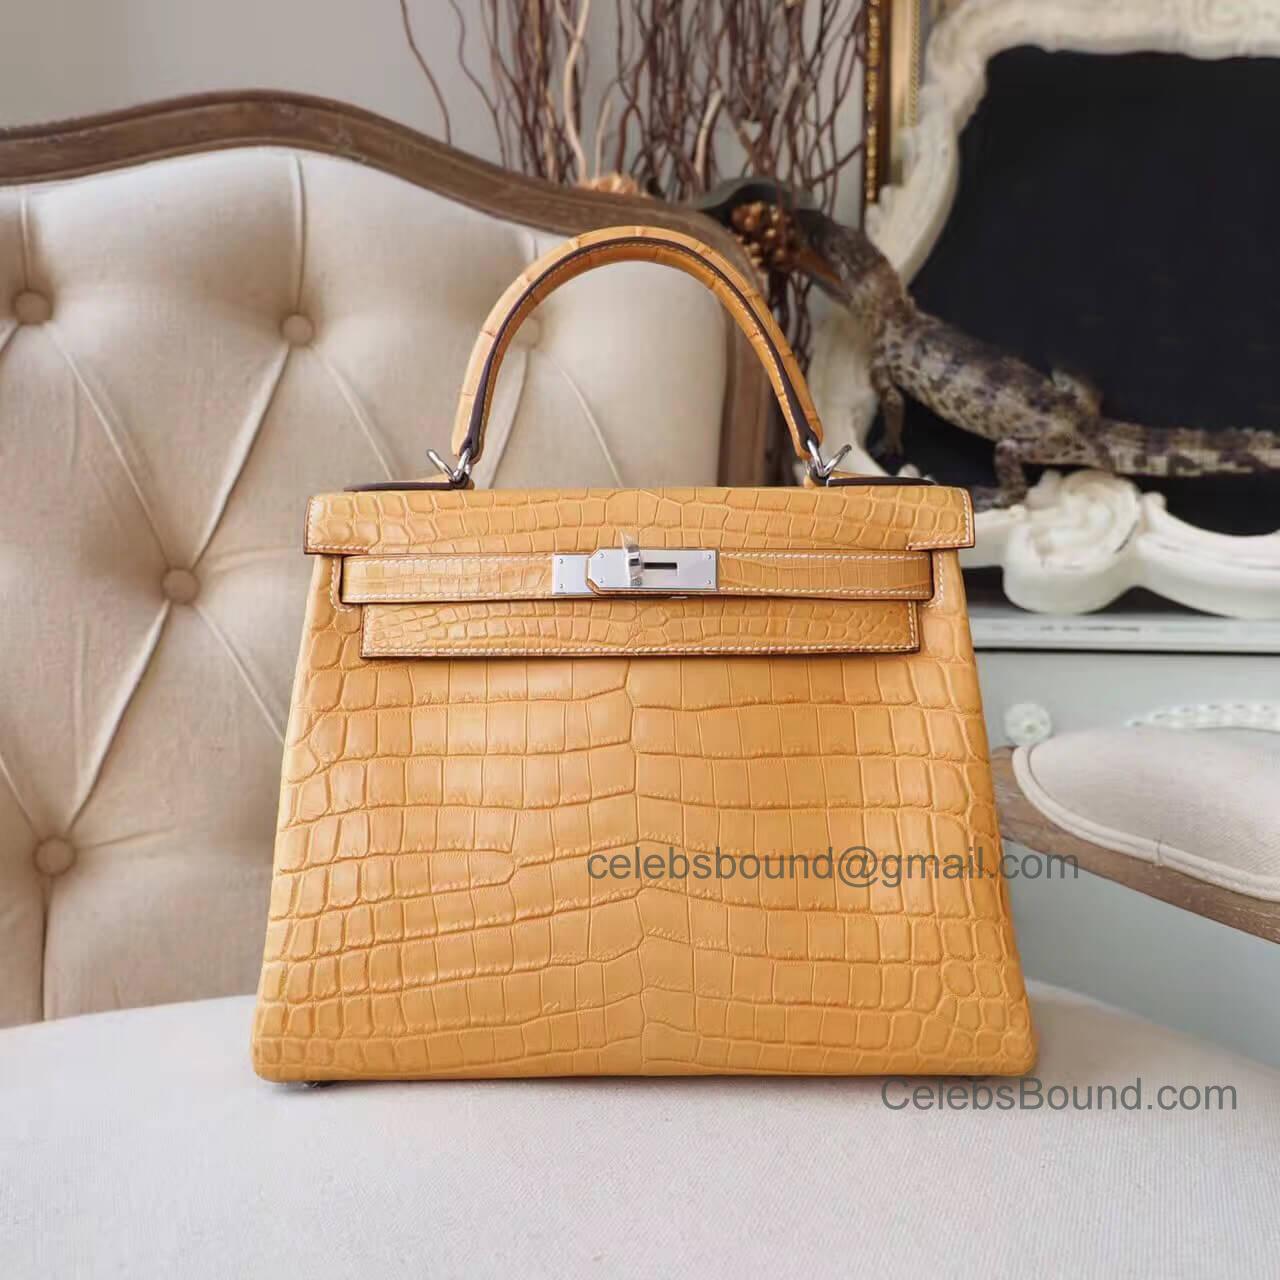 Replica Hermes Kelly 28 Bag in 1a Mais Matte Nile Croc PHW